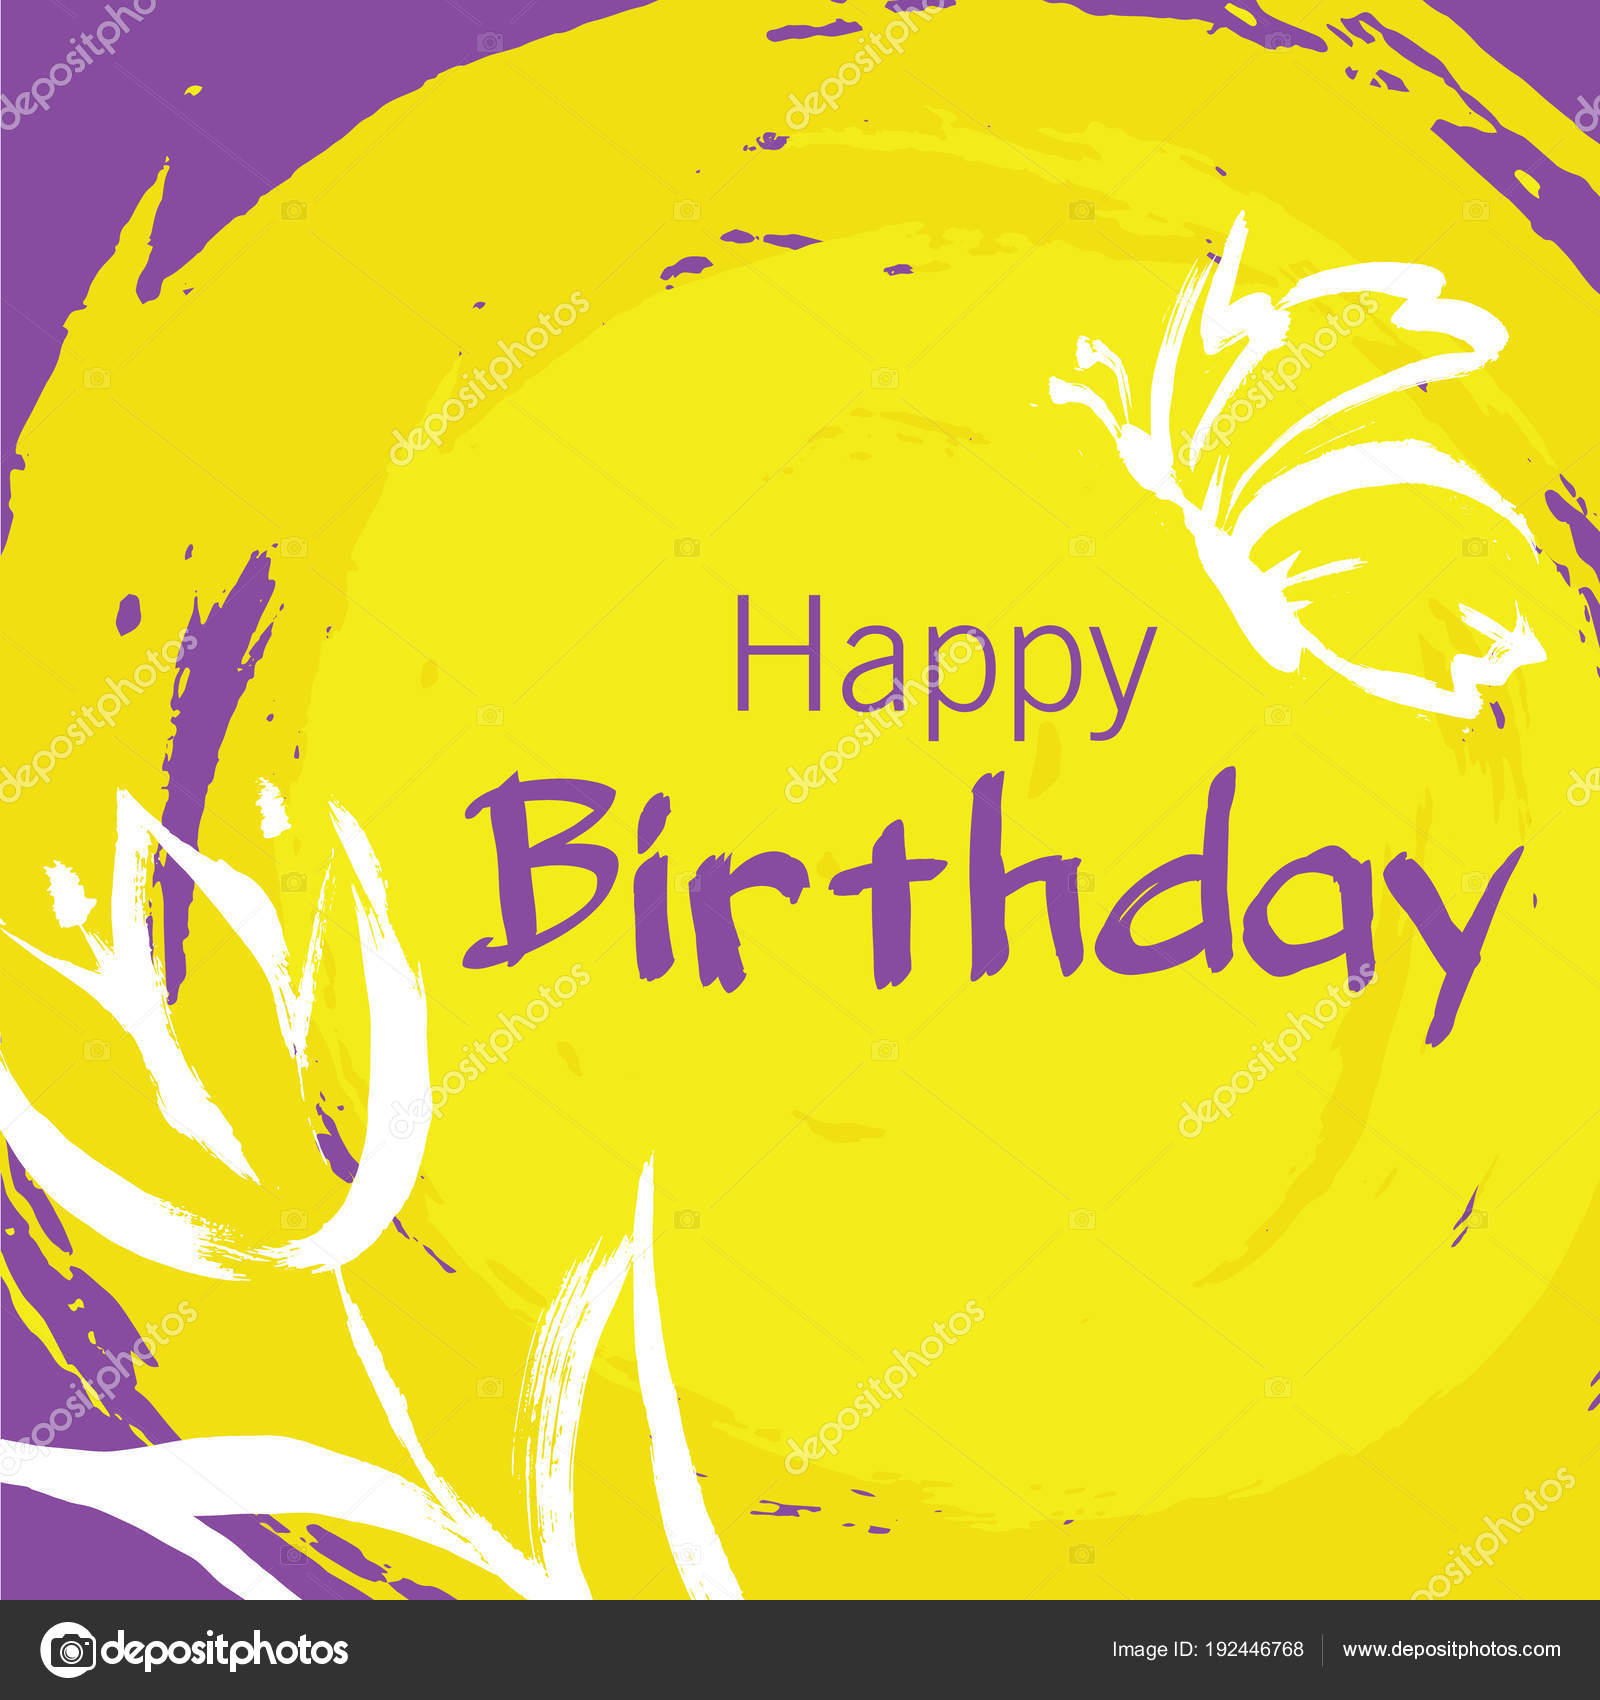 Happy Birthday Card With Hand Draw Elements As Flower And Butter Stock Vector